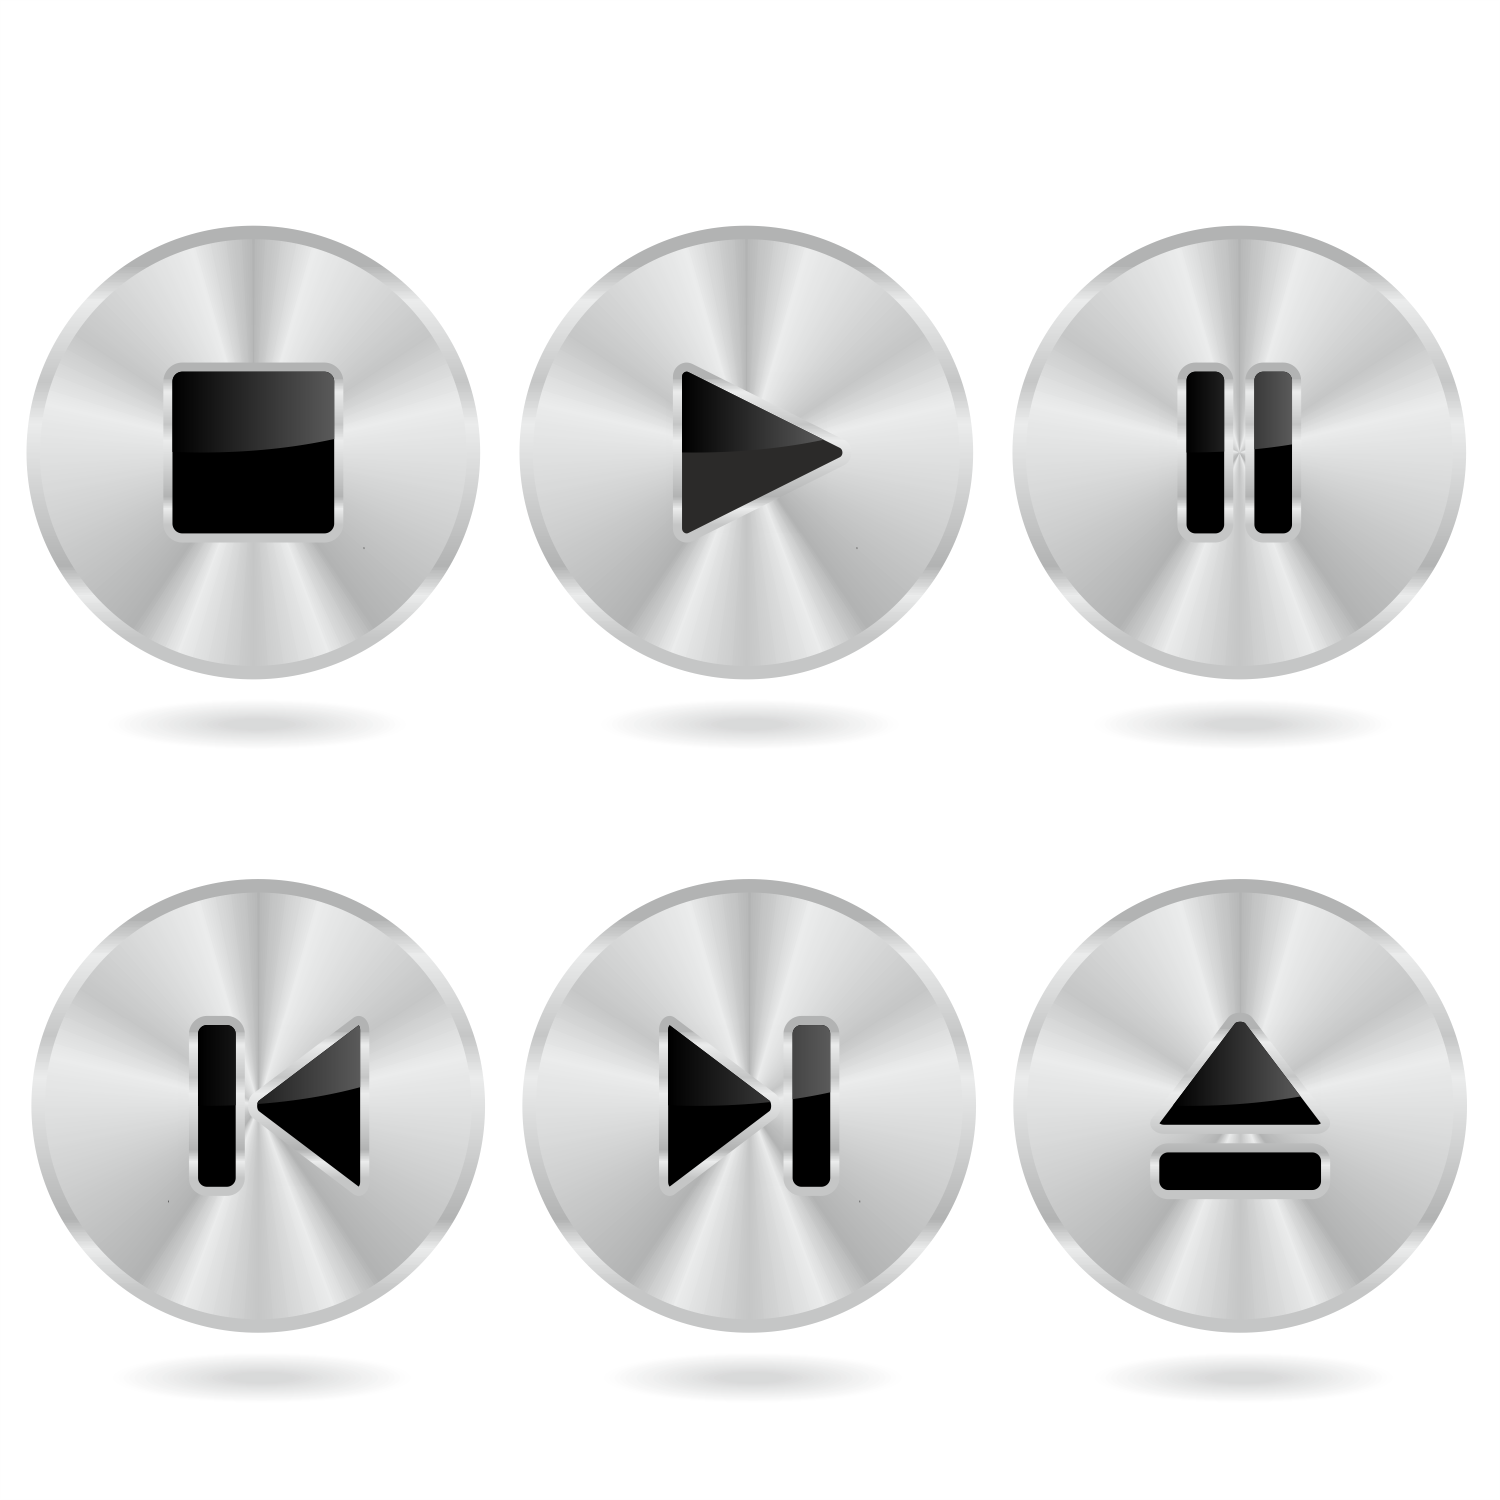 Metal player buttons